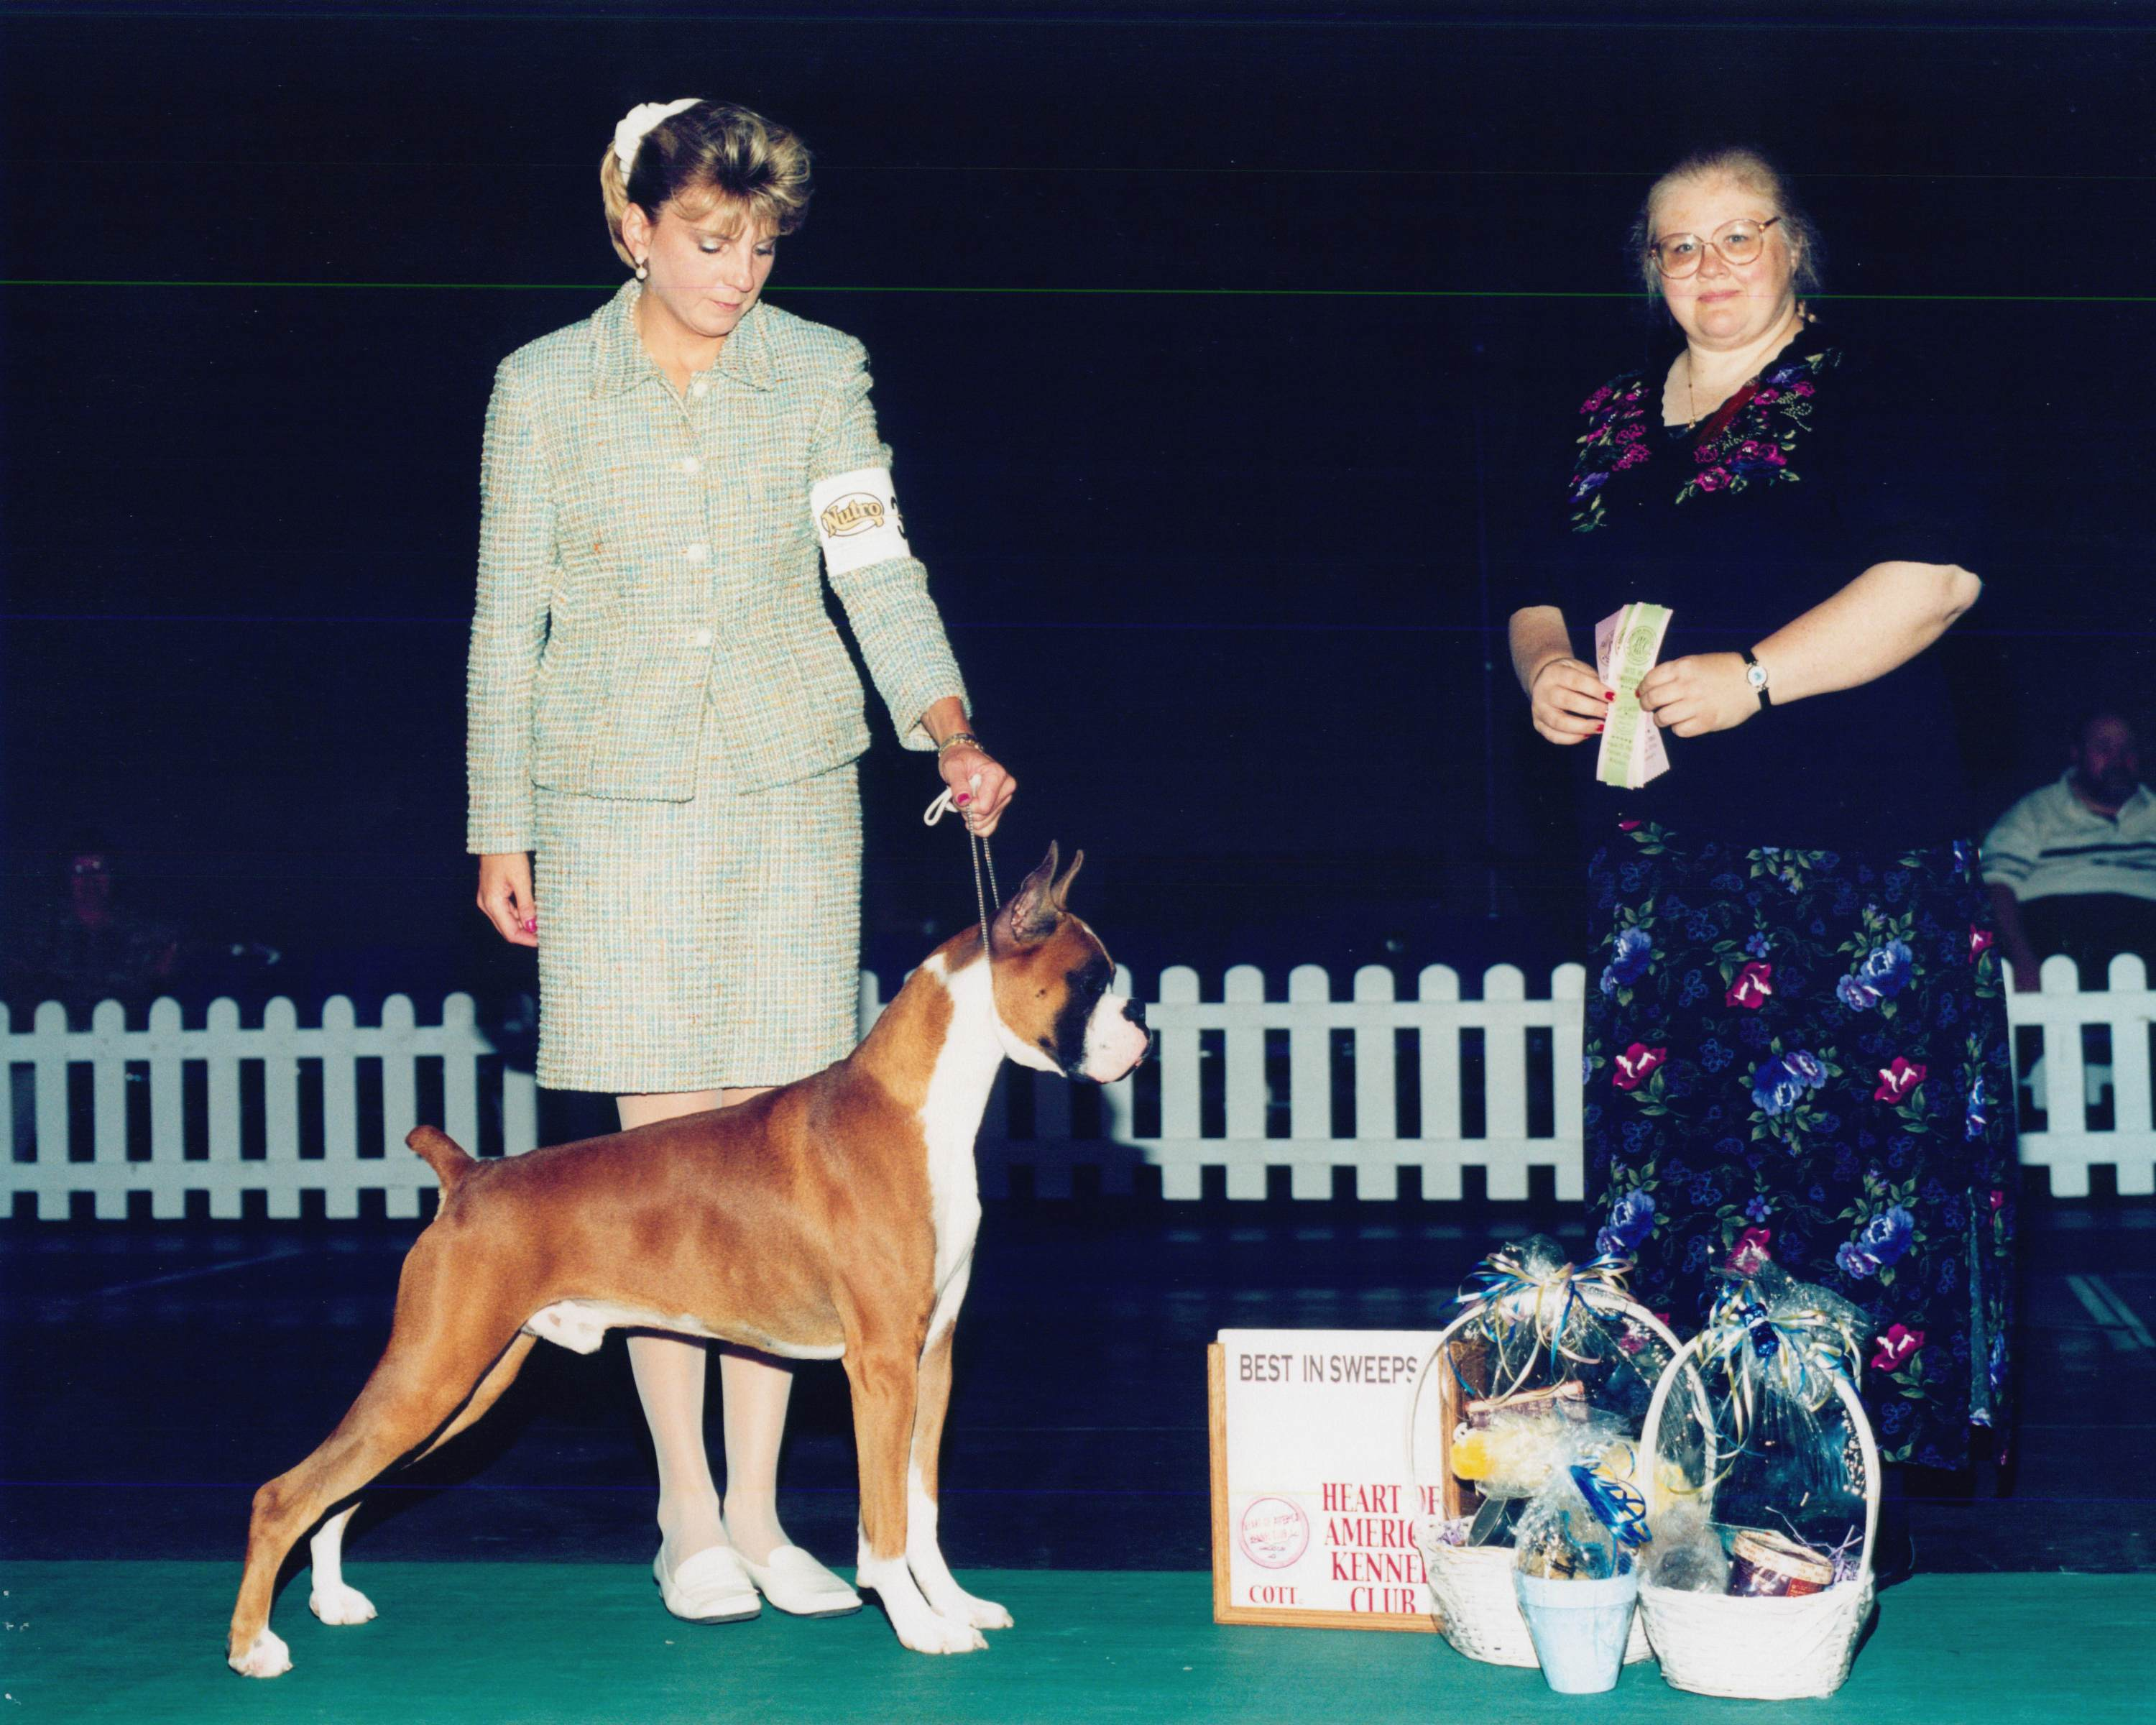 Grand Sweepstakes, Best Junior @ 2002 Specialty Show #2